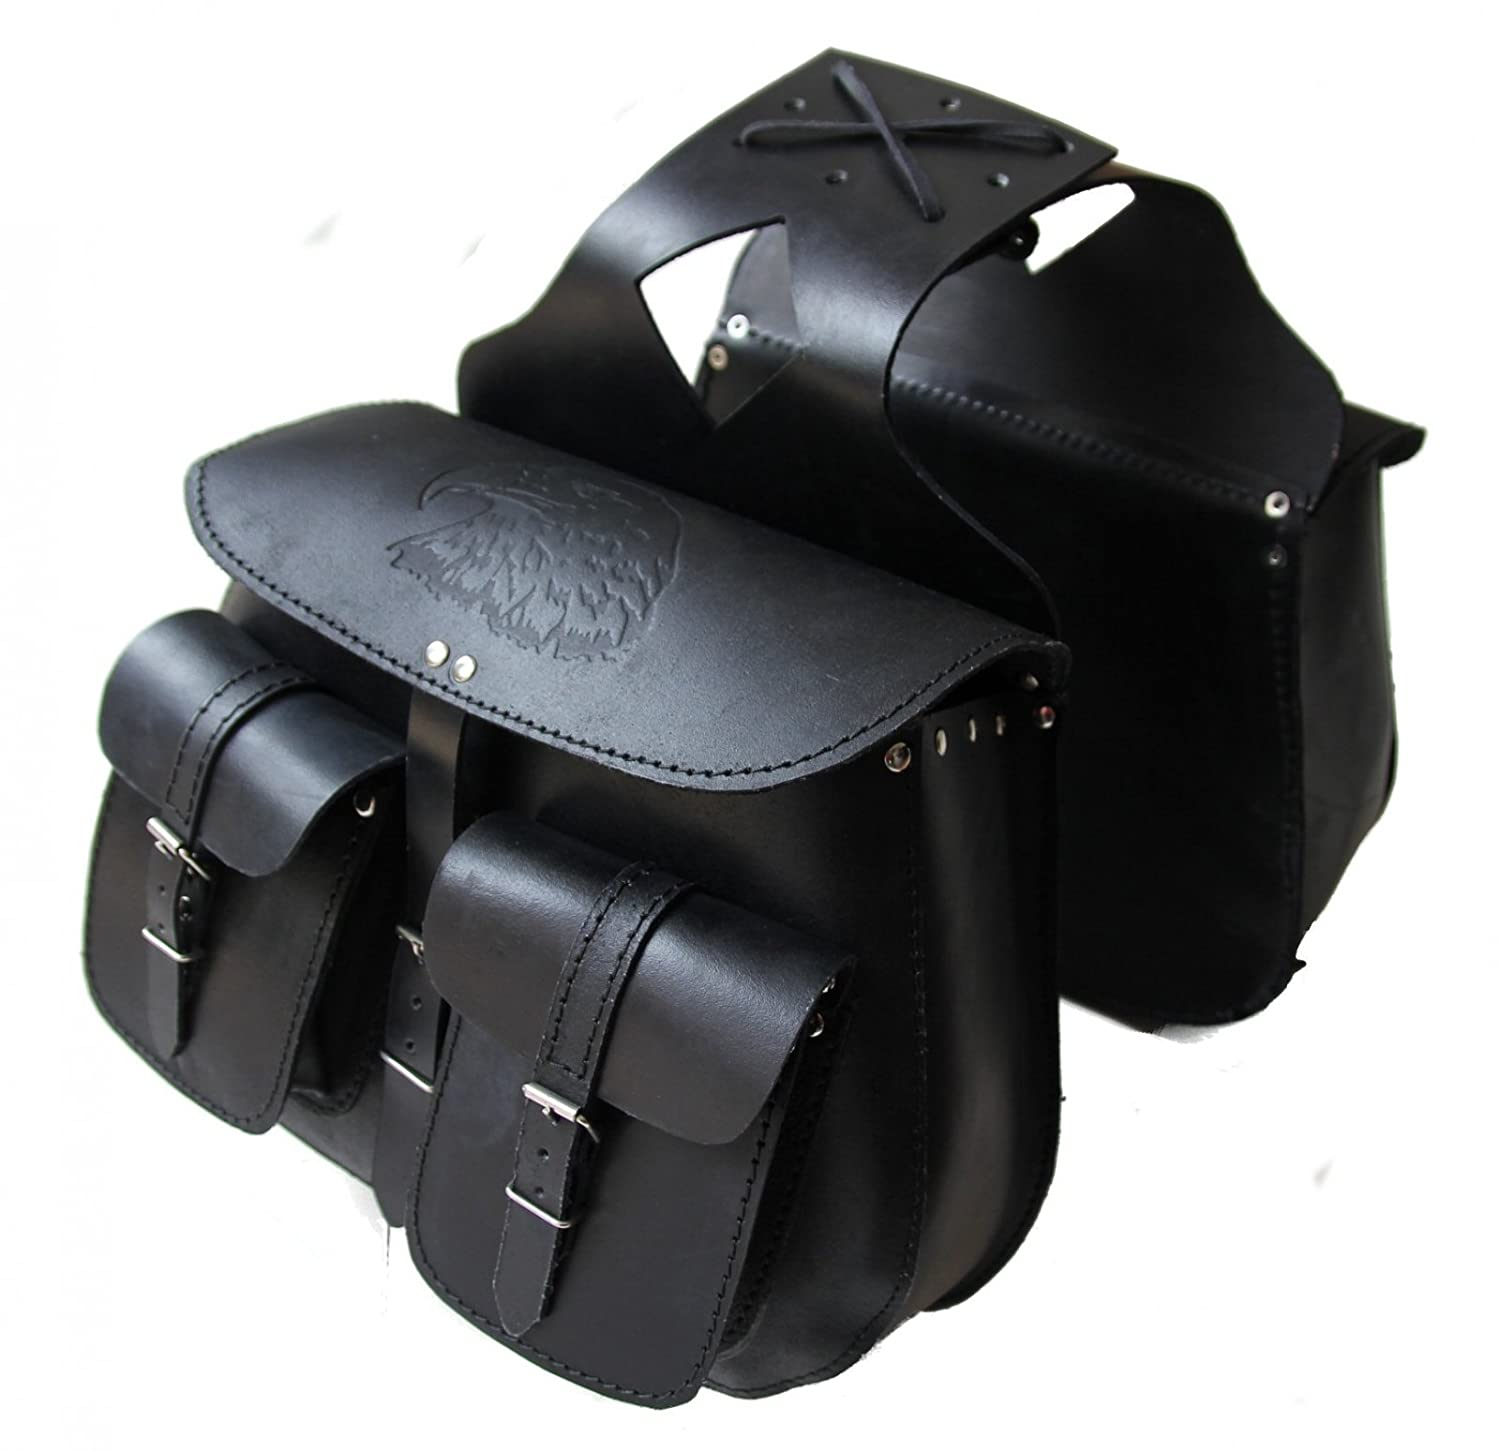 Karno-Motorsport Kc503 Sacoches Moto Saddle Bags en Cuir